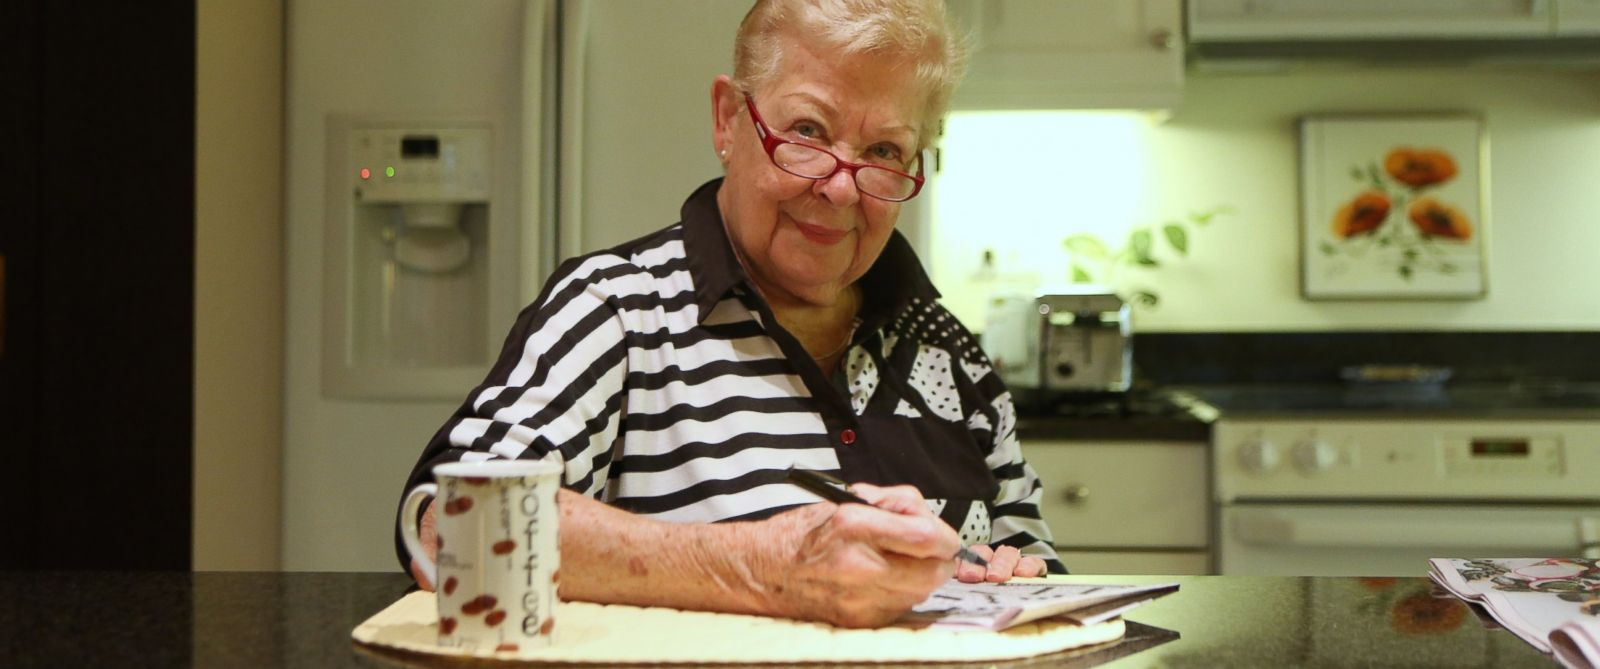 PHOTO: Barb Shaeffer, 85, works on one of the two crossword puzzles she does every morning in her kitchen in Chicago, Ill., on Aug. 16, 2012